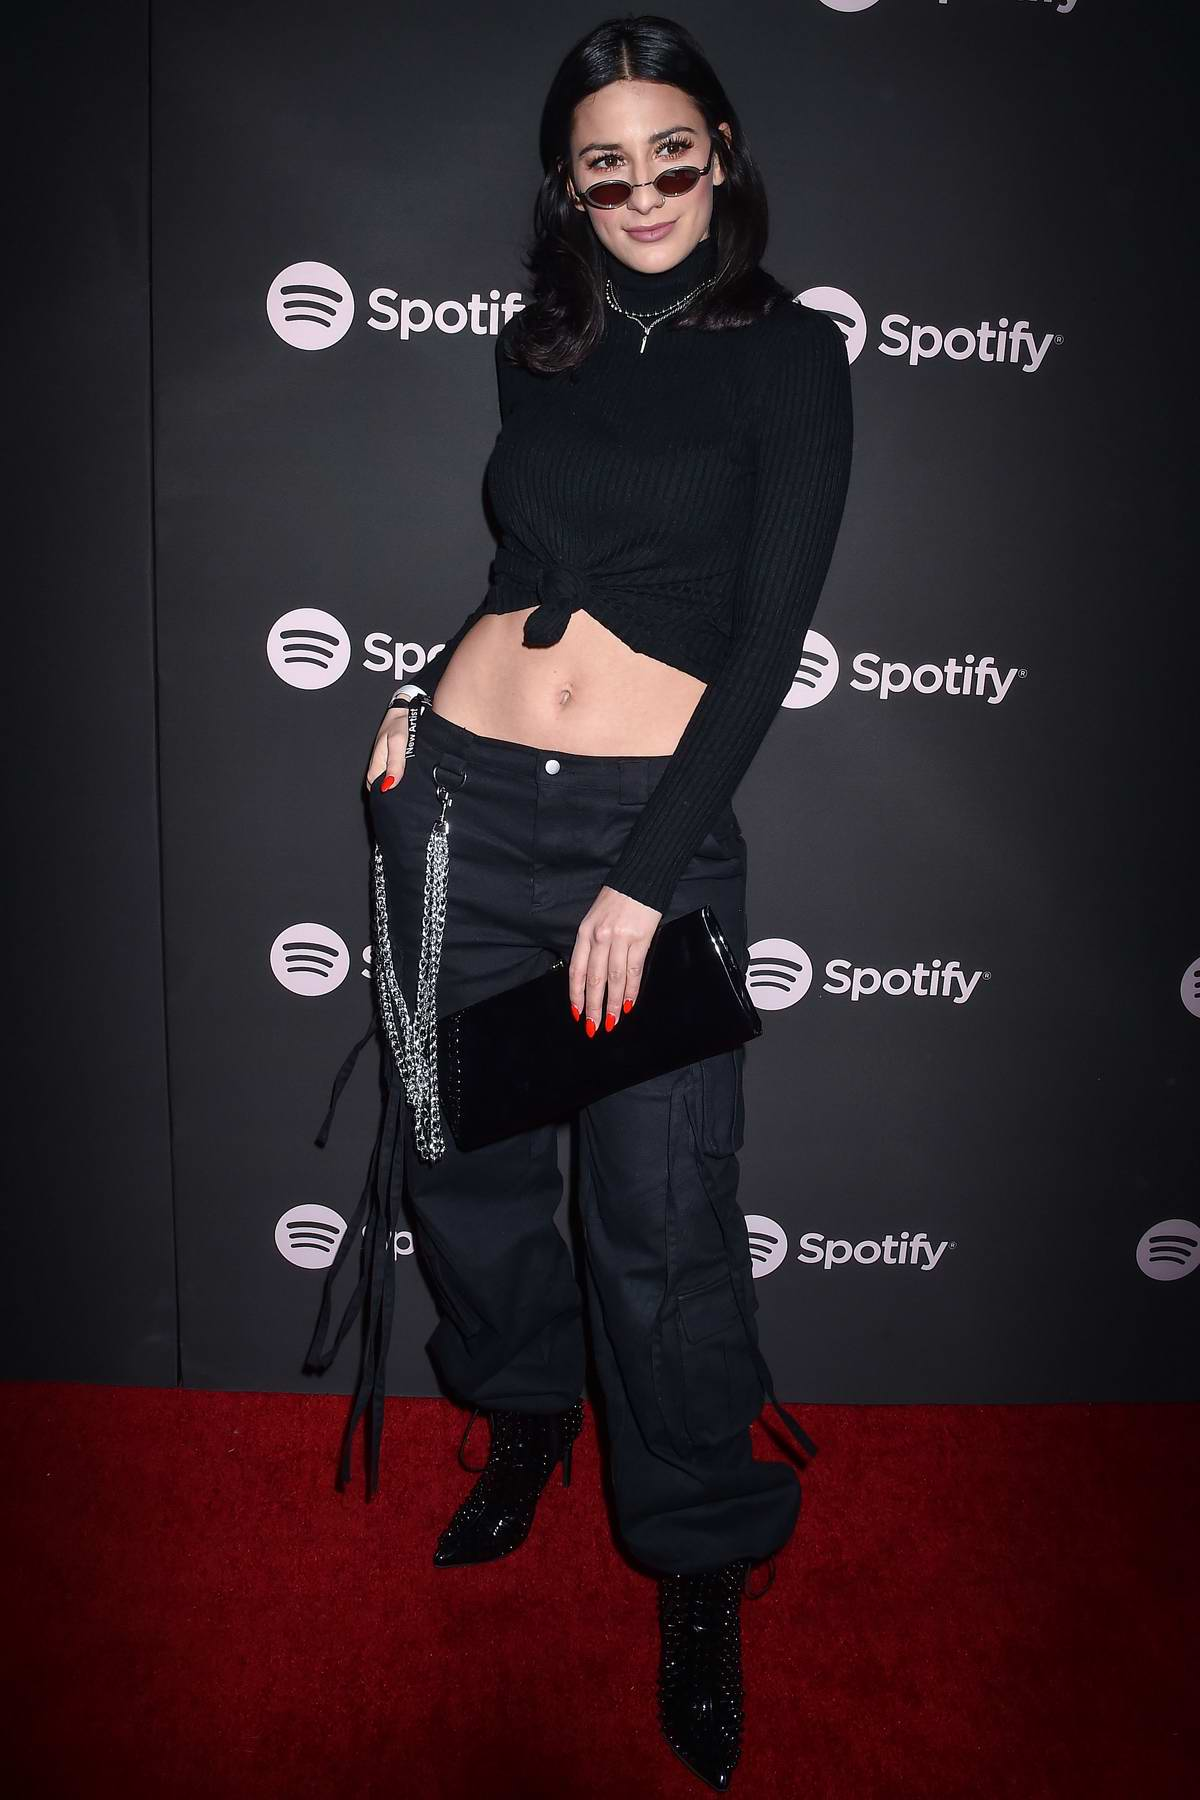 Lexy Panterra attends the Spotify 'Best New Artist 2019' Event at Hammer Museum in Los Angeles